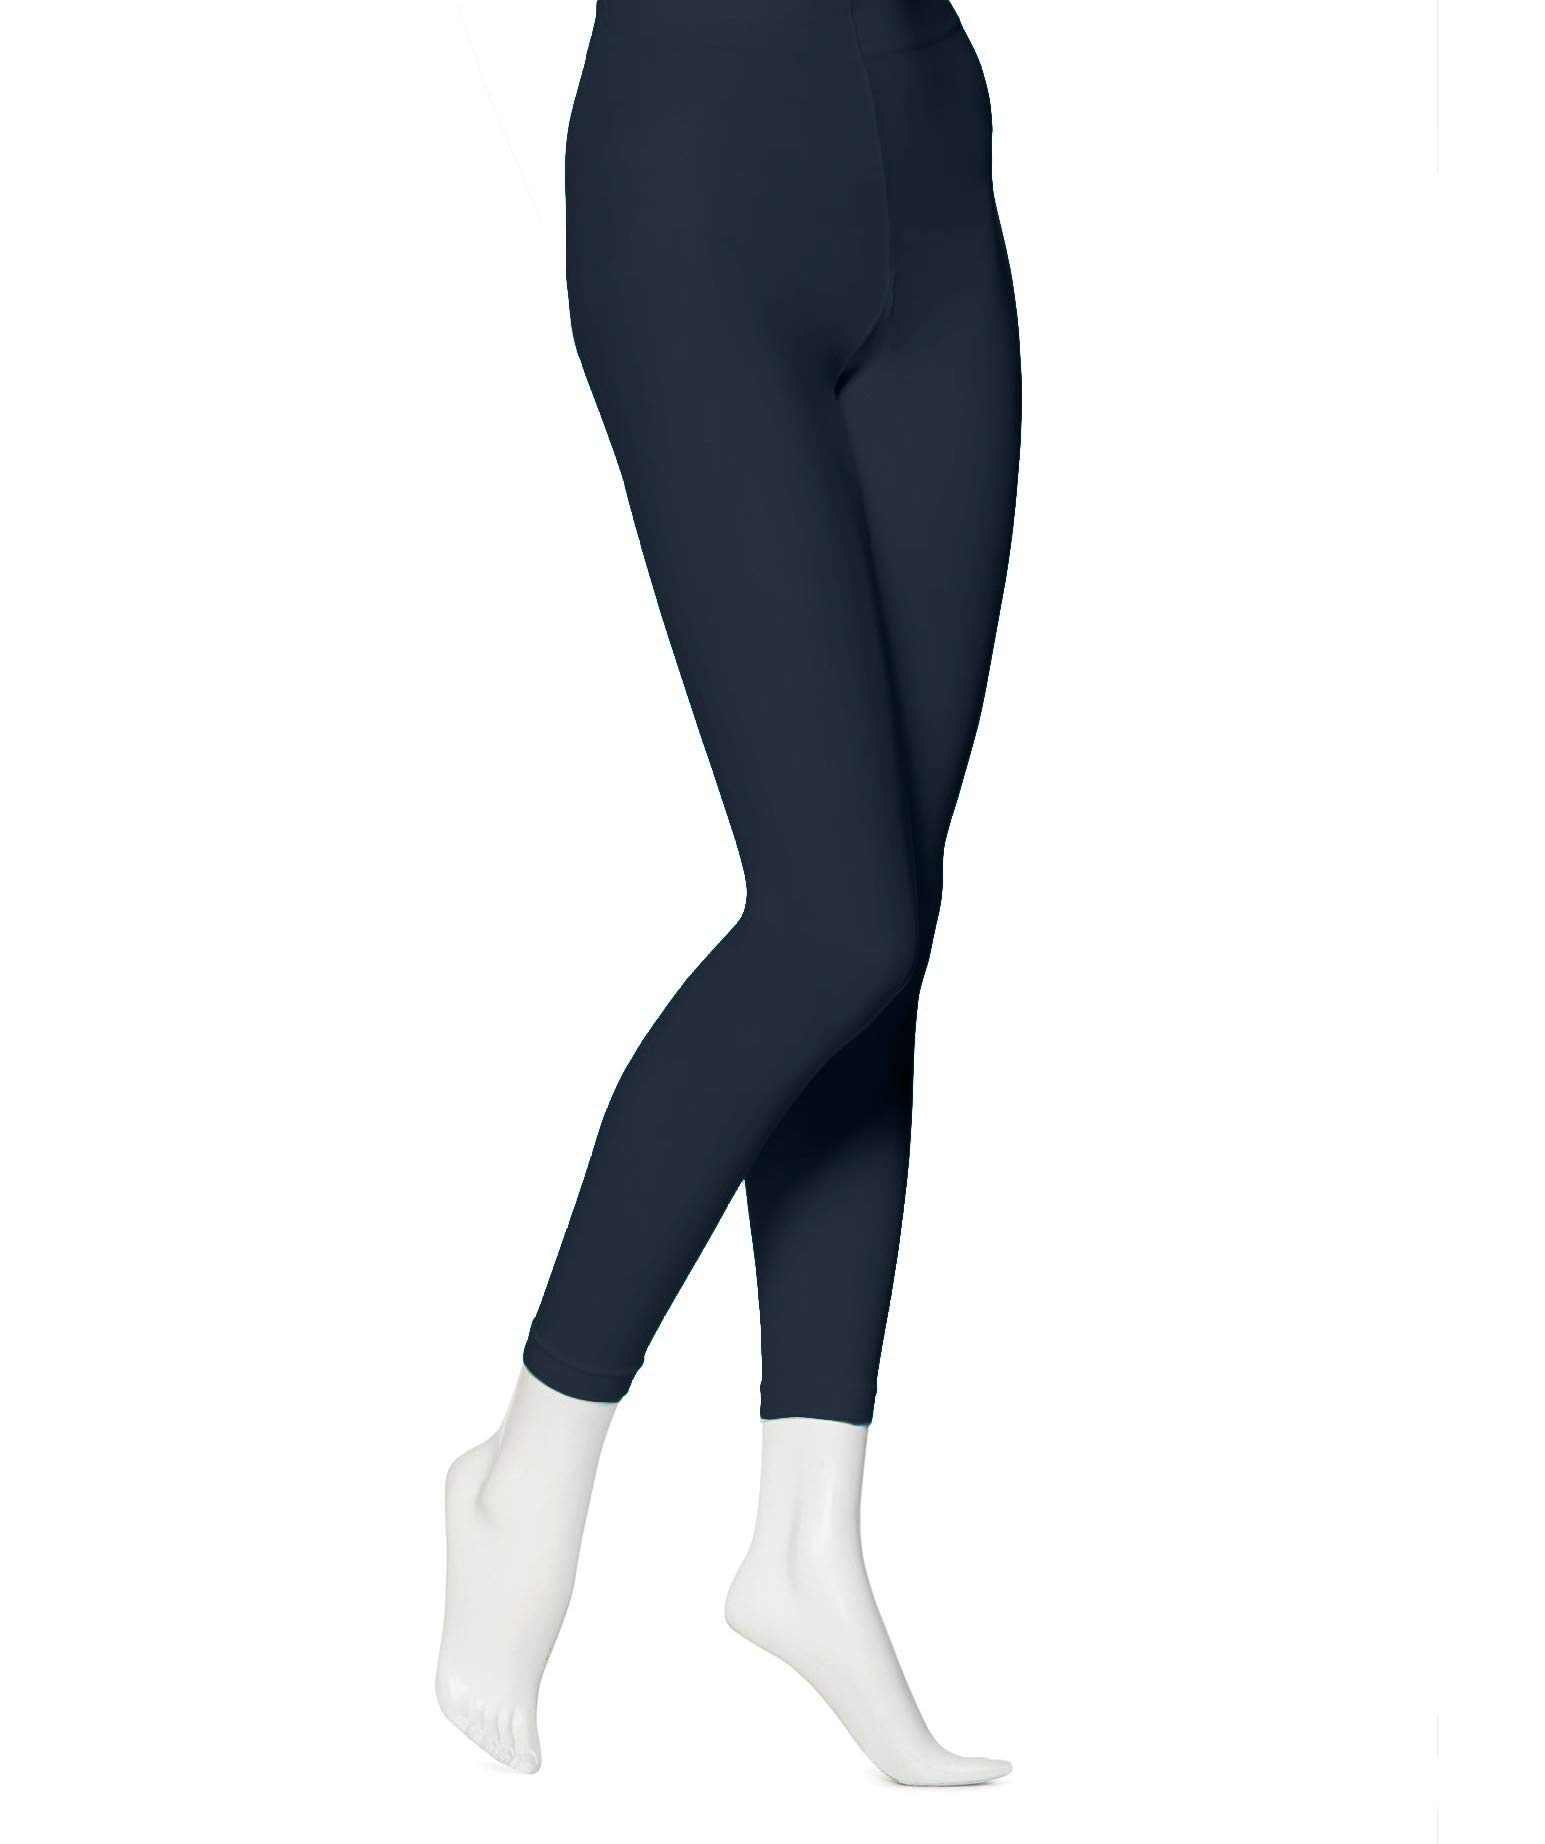 f7173d750193b EMEM Apparel Women's Solid Colored Opaque Microfiber Footless Tights  product image